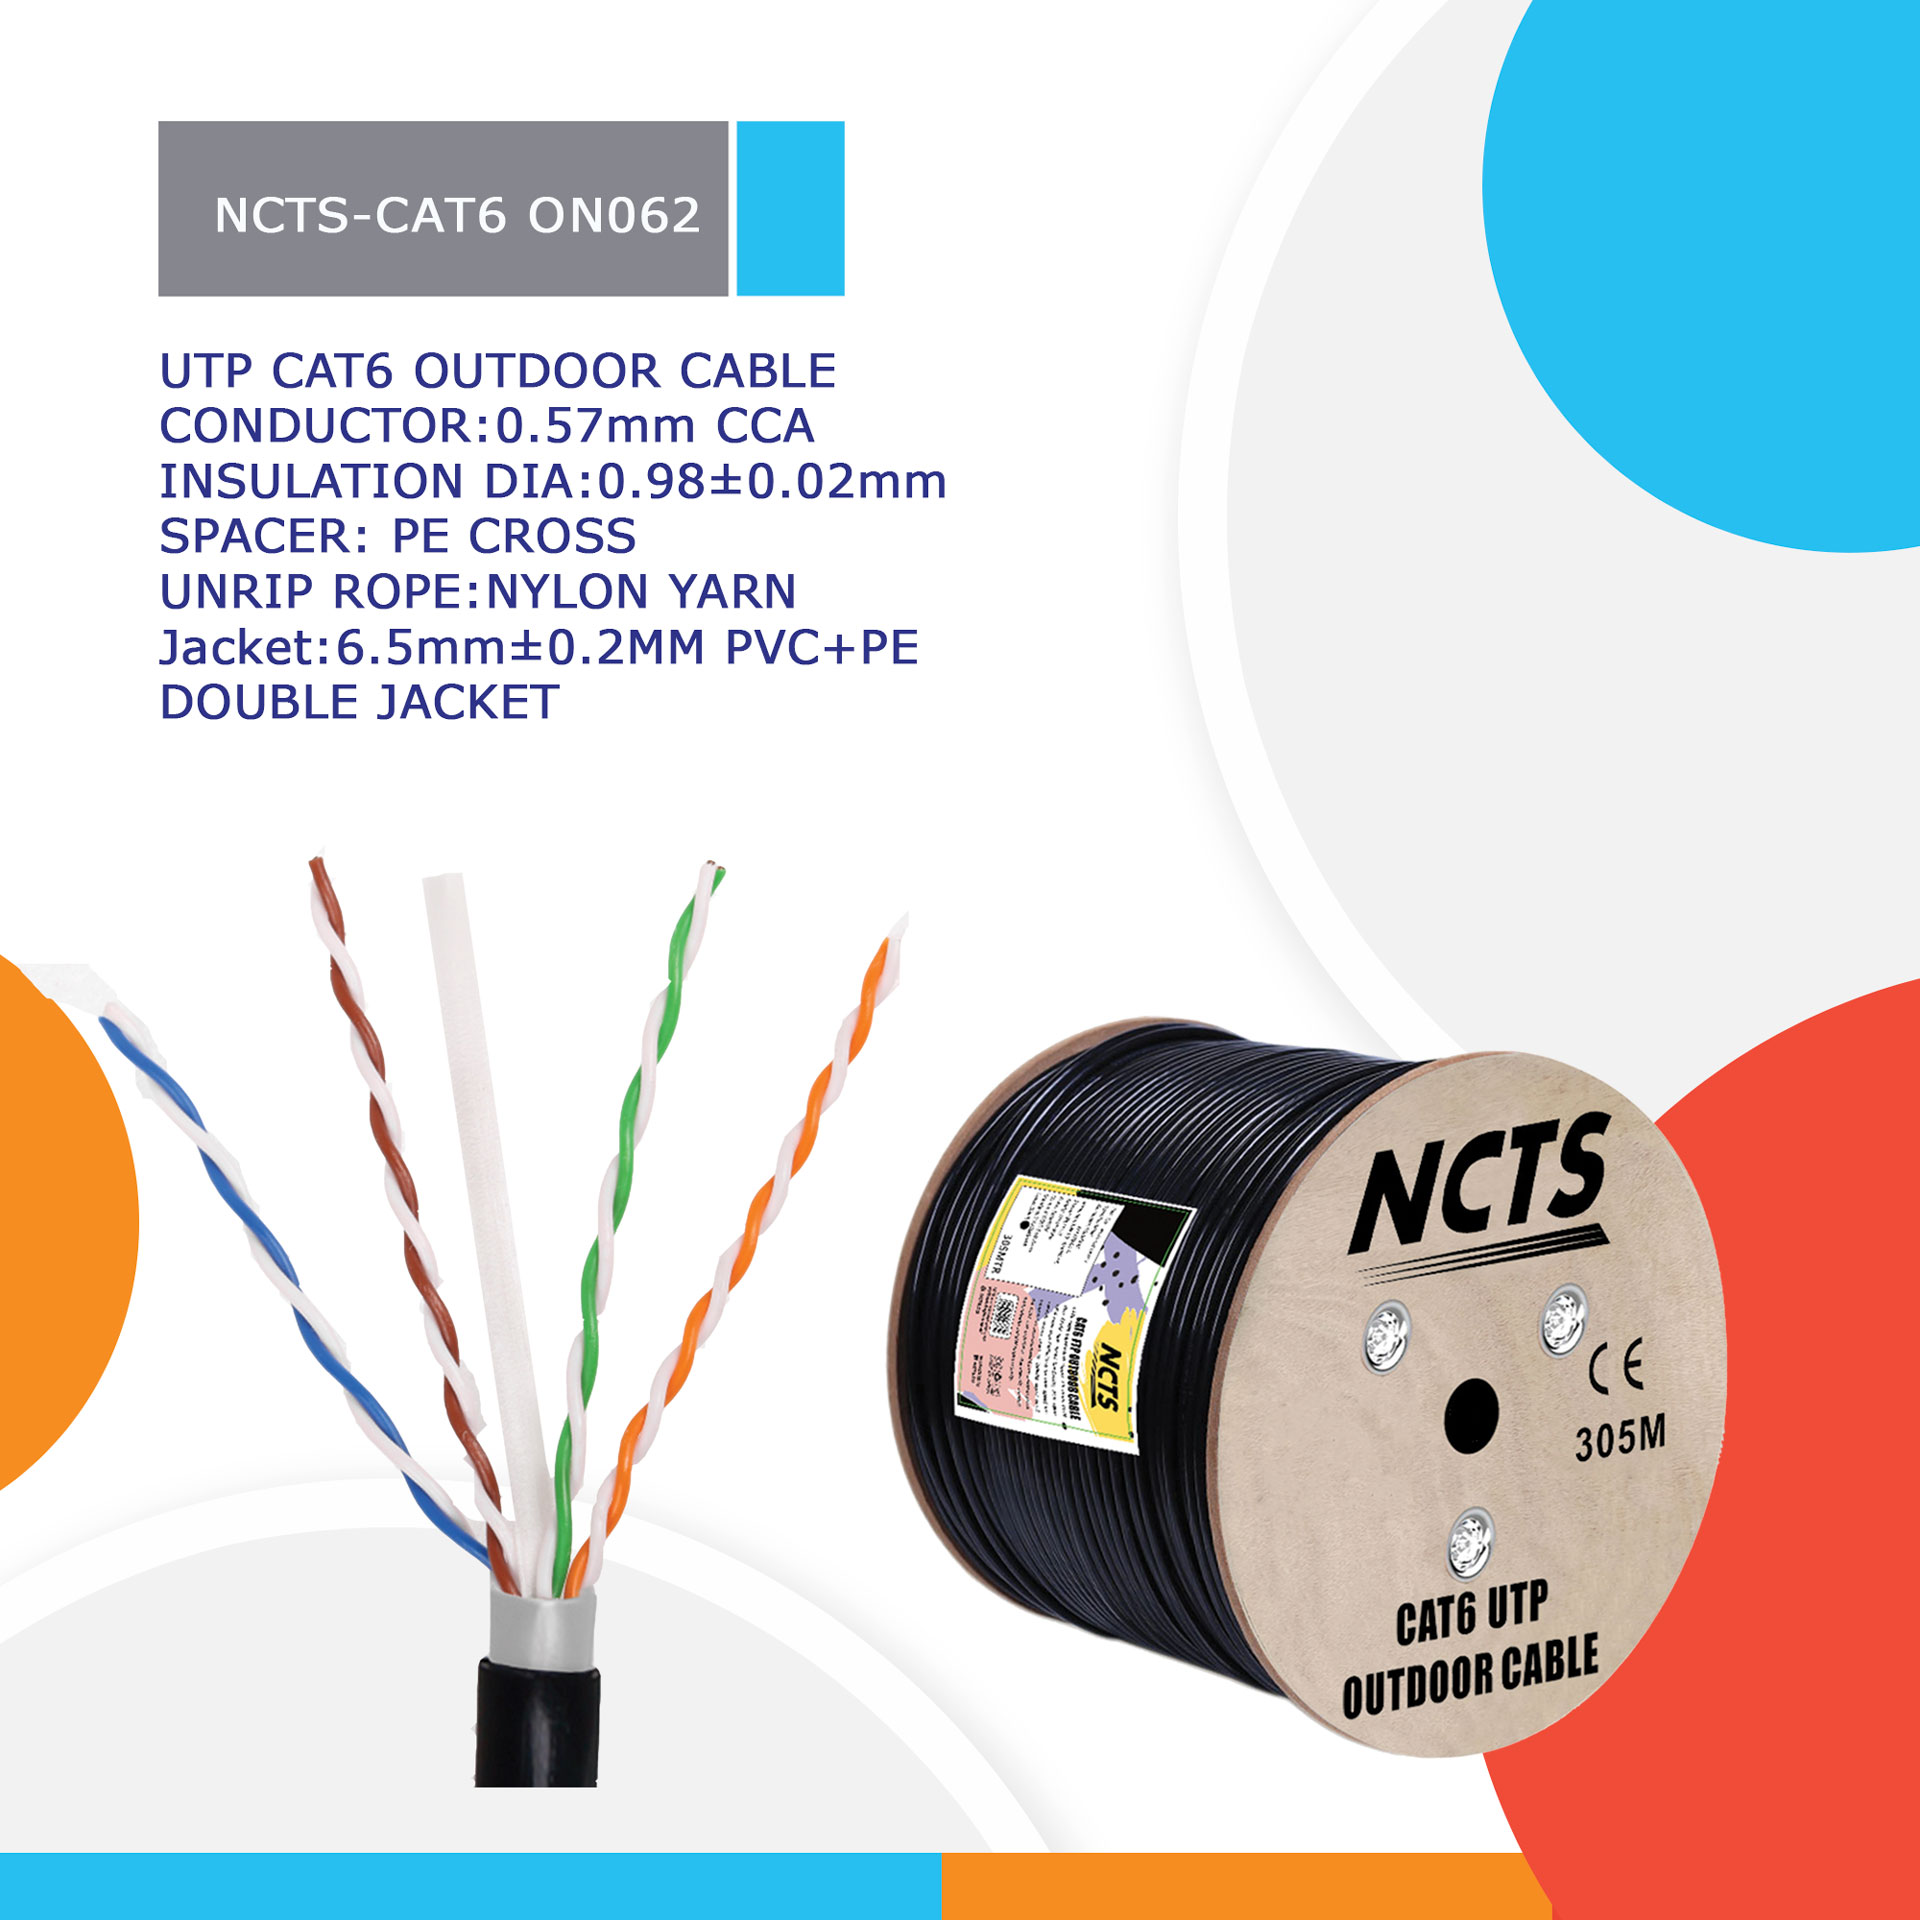 NCTS-CAT6 ON062